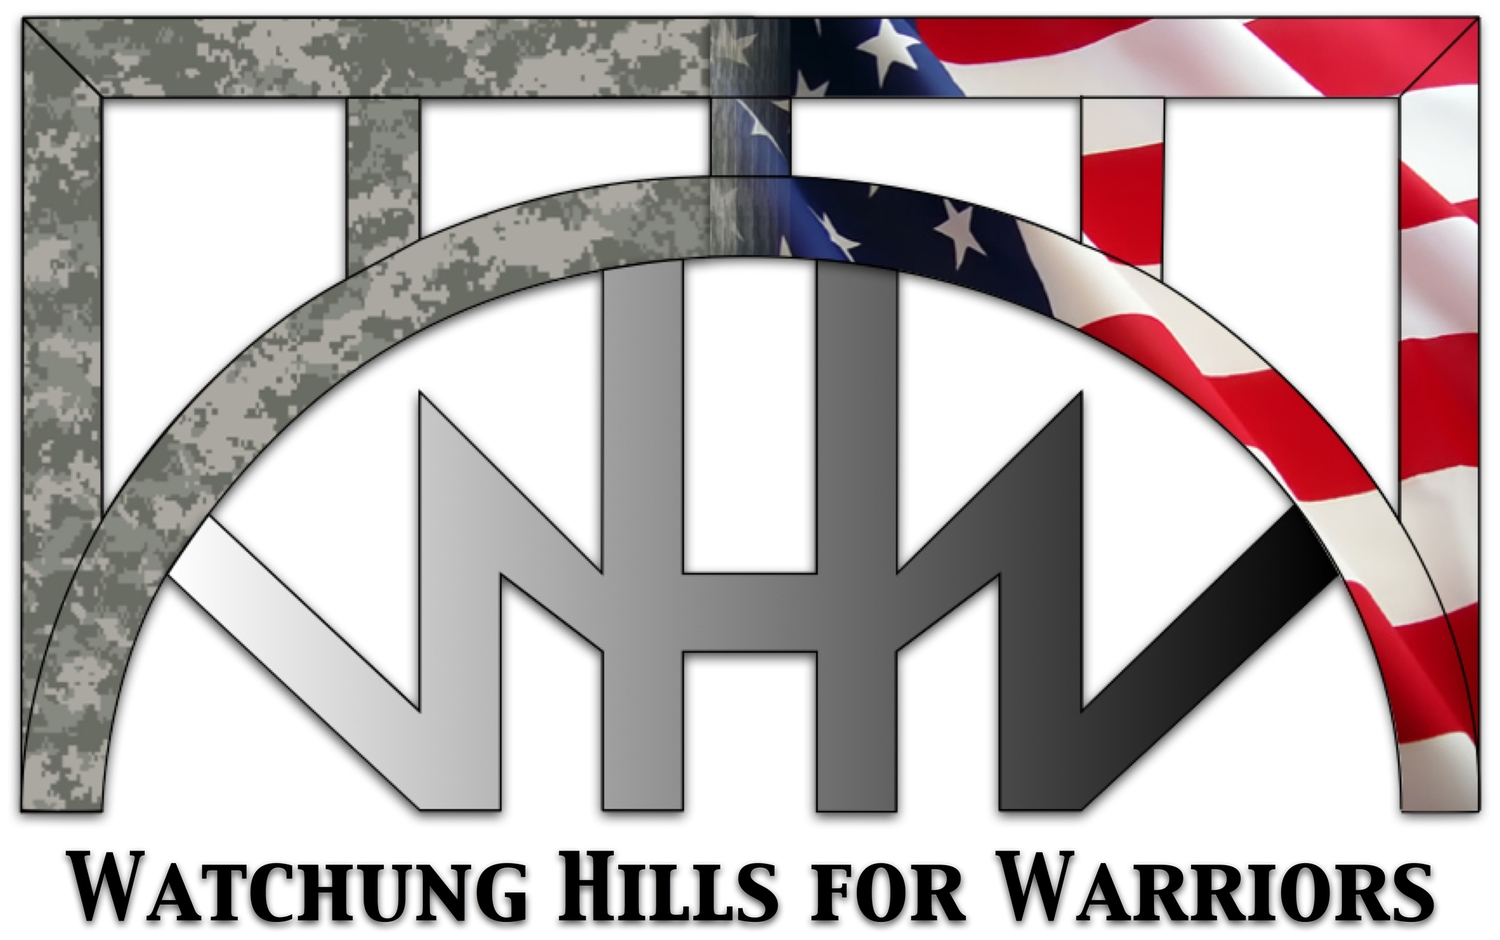 Watchung Hills for Warriors